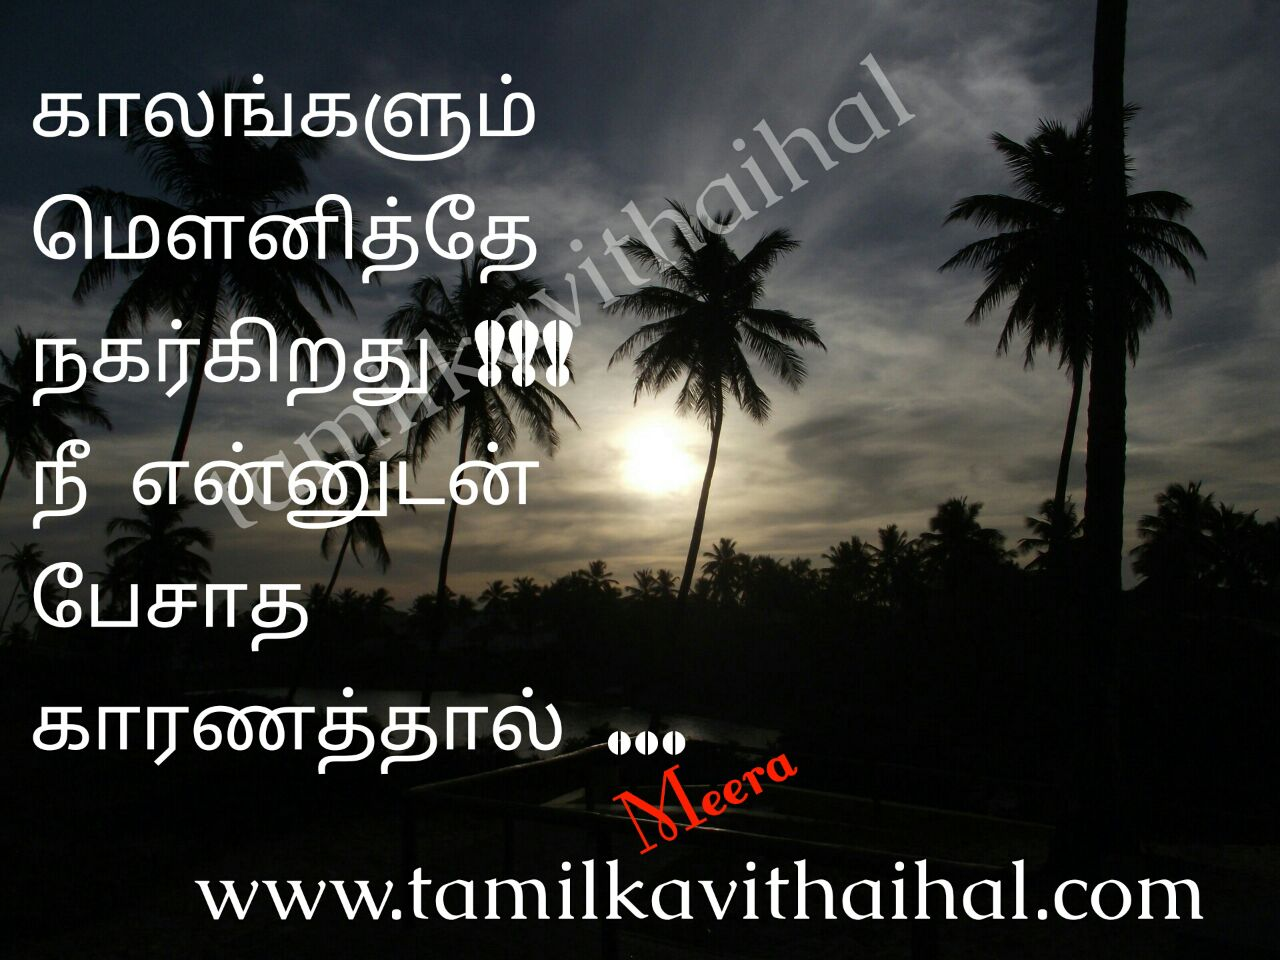 Best quotes for pirivu soham kavithai mounam kalam karanam love meera poem image dp status